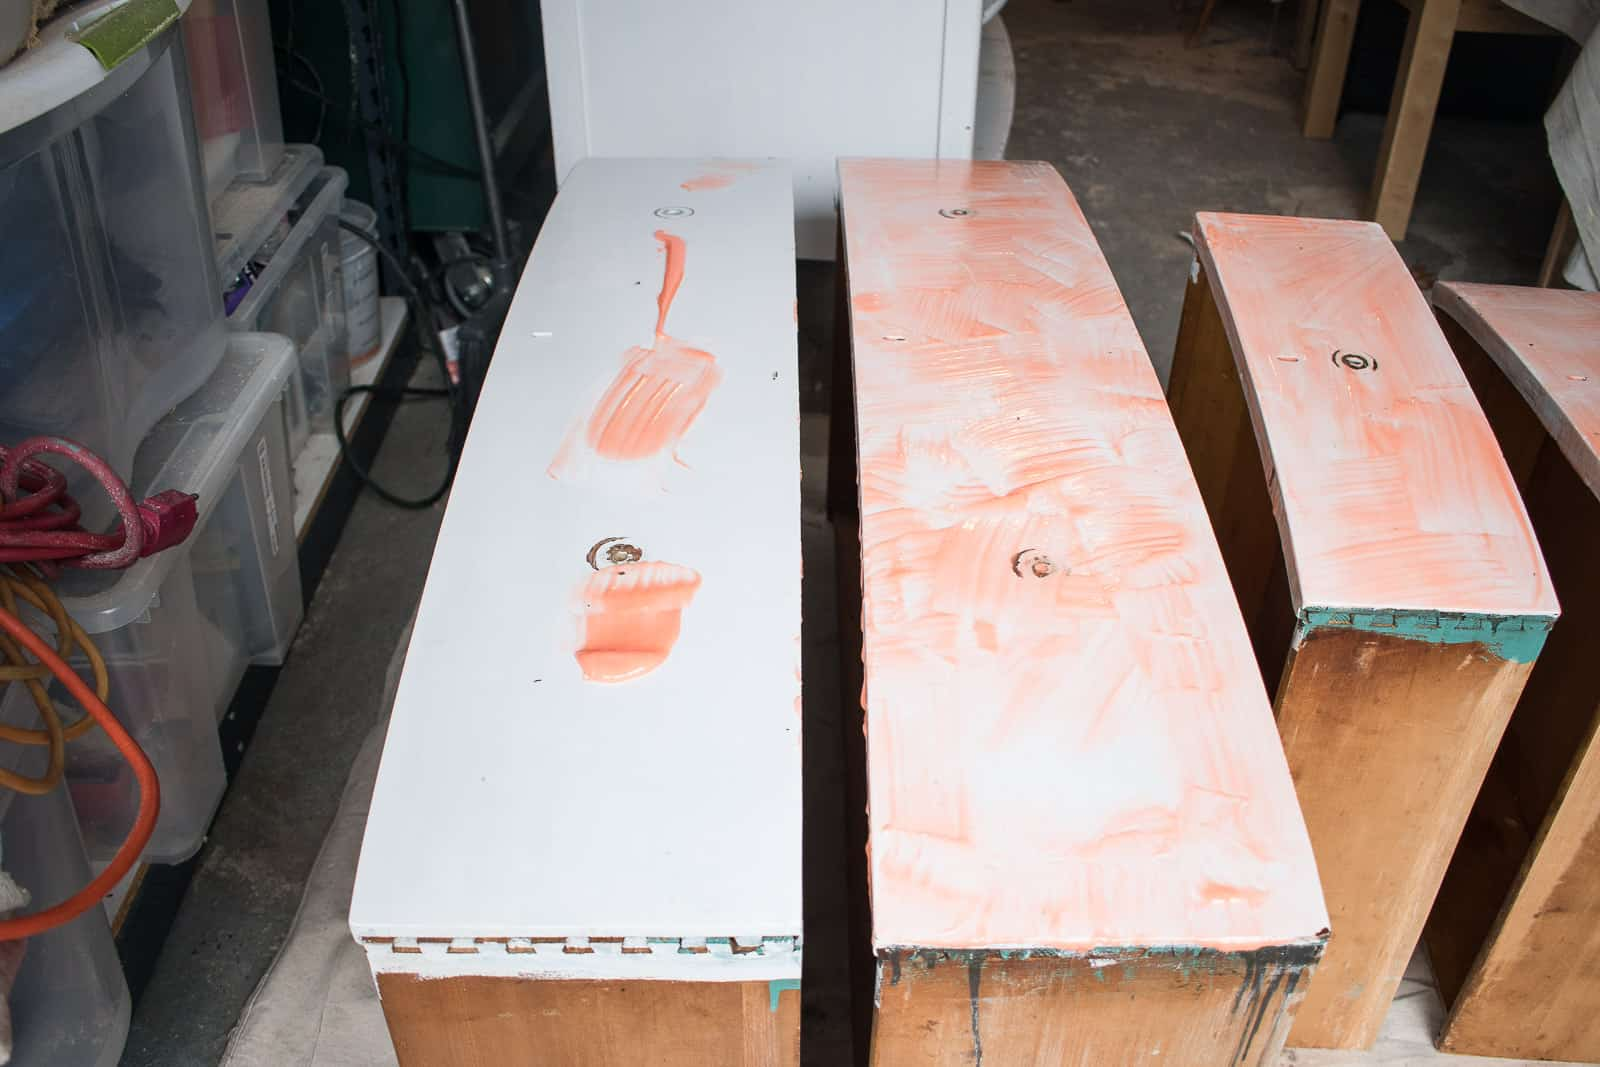 stripper applied to painted furniture